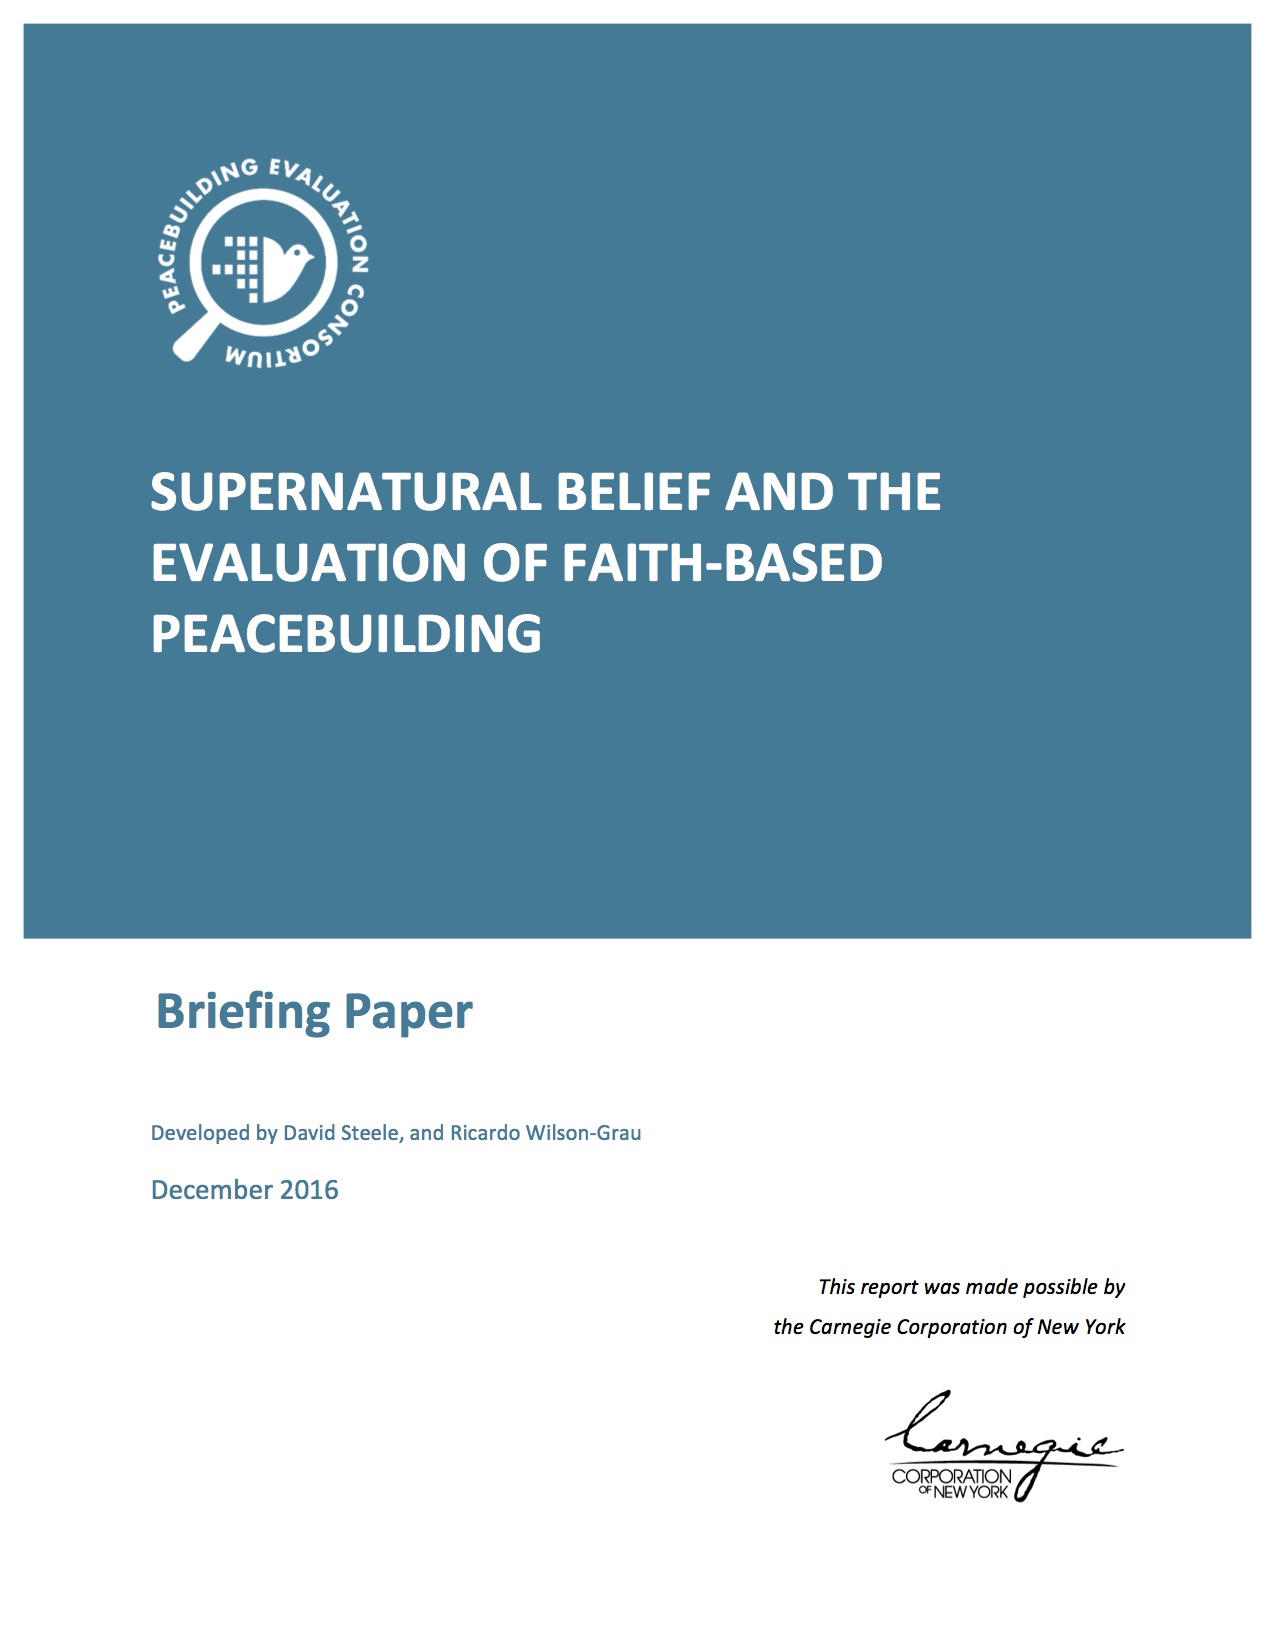 SUPERNATURAL BELIEF AND the EVALUATION FAITH-BASED PEACEBUILDING